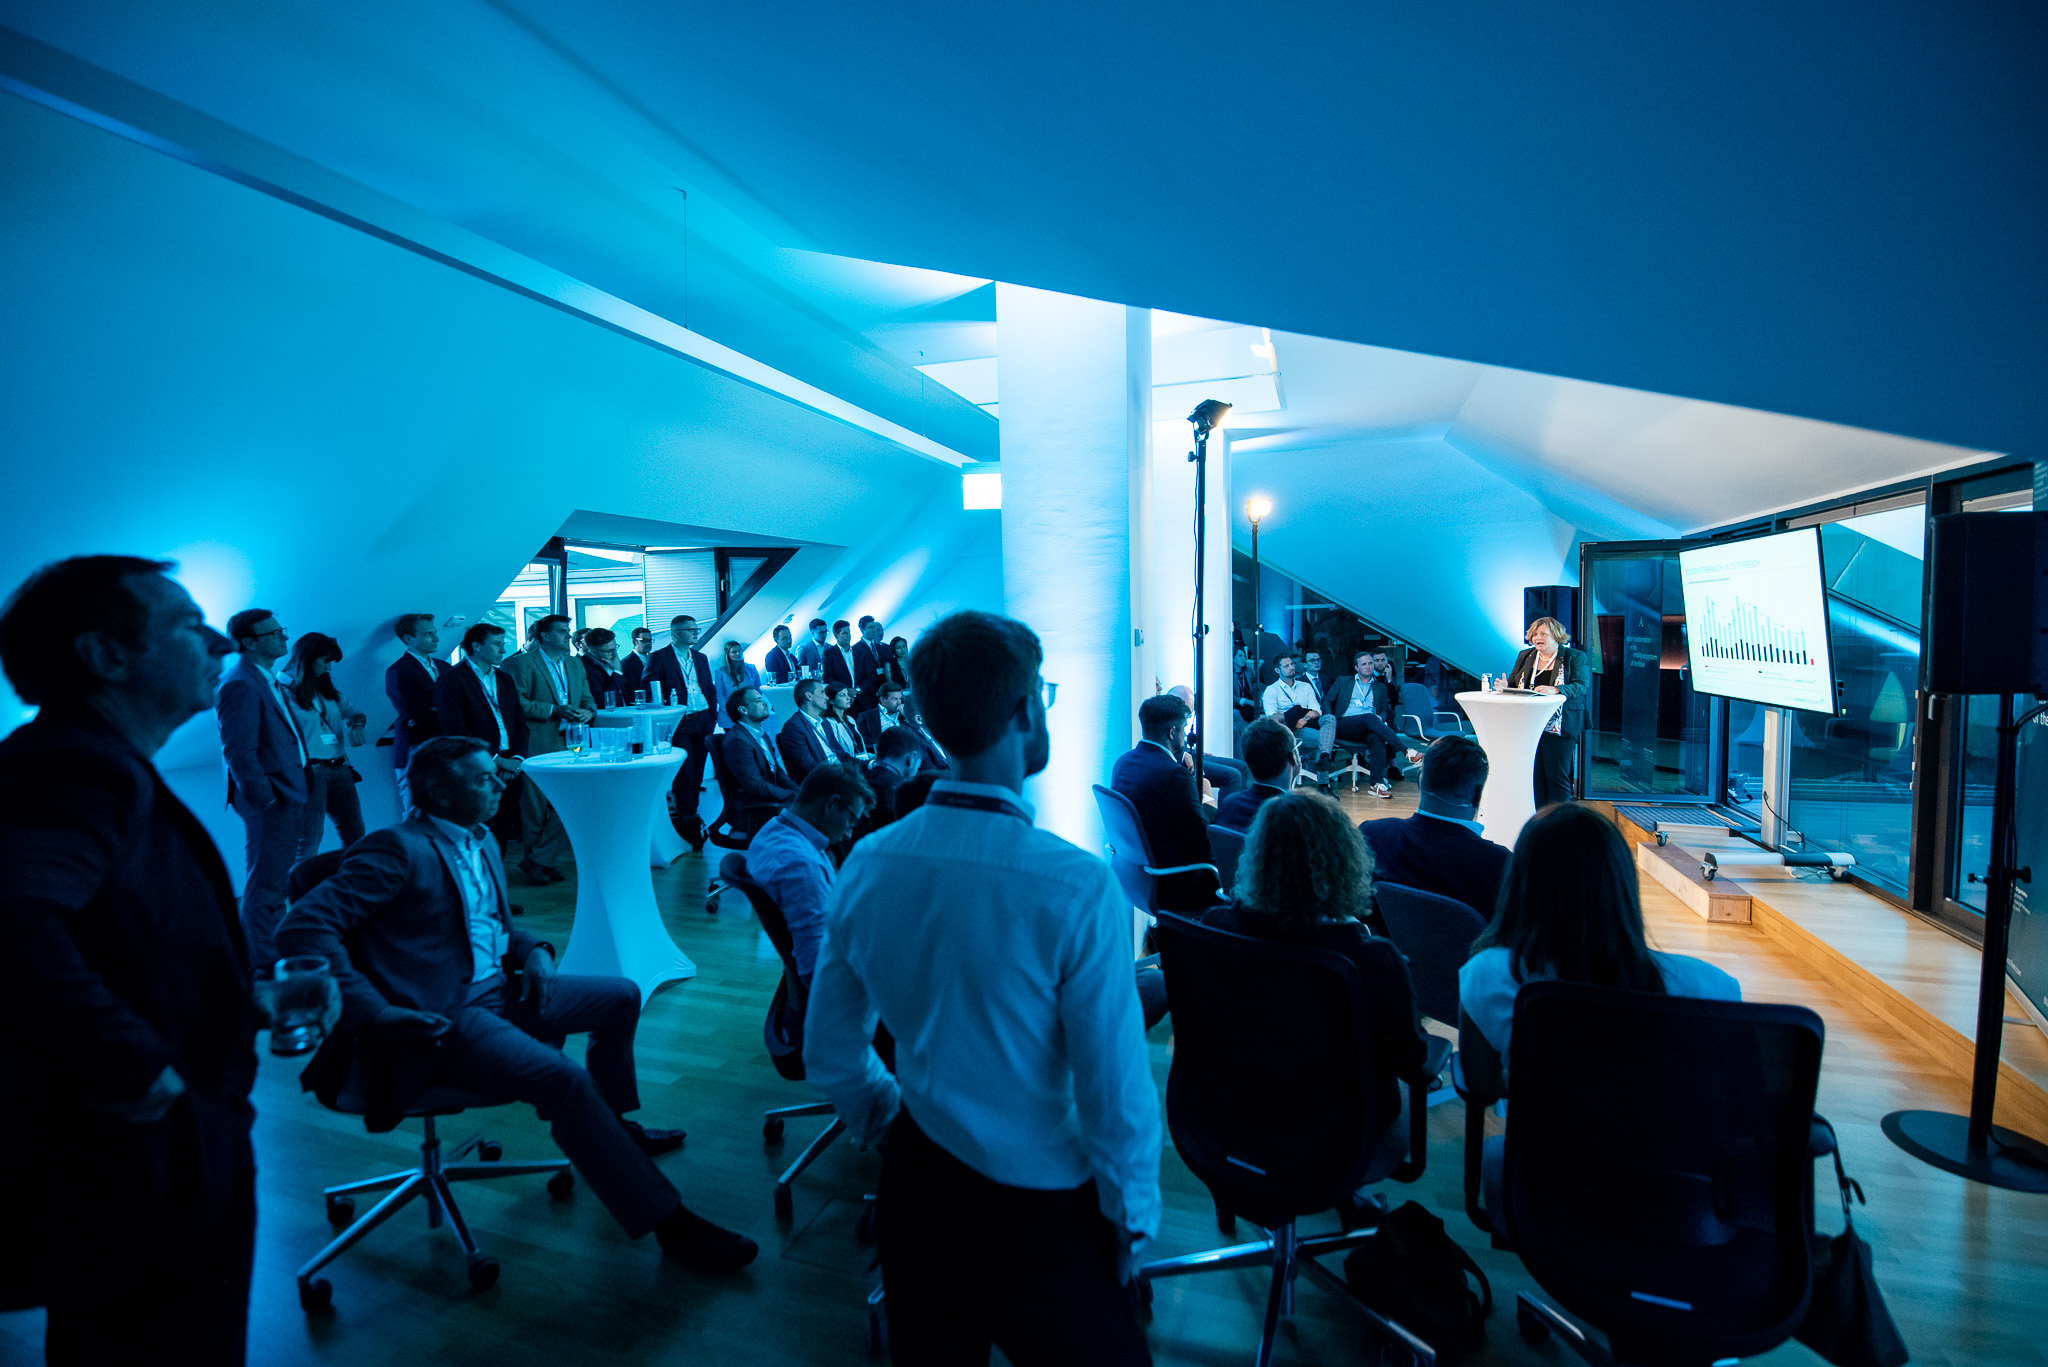 Blue top floor of a building with sloping roofs on the left and right side. At least 40 people are visible. The light is blue and rather dark. On the right side you can see a speaker holding a keynote in front of a screen, on the right side the audience is listening.